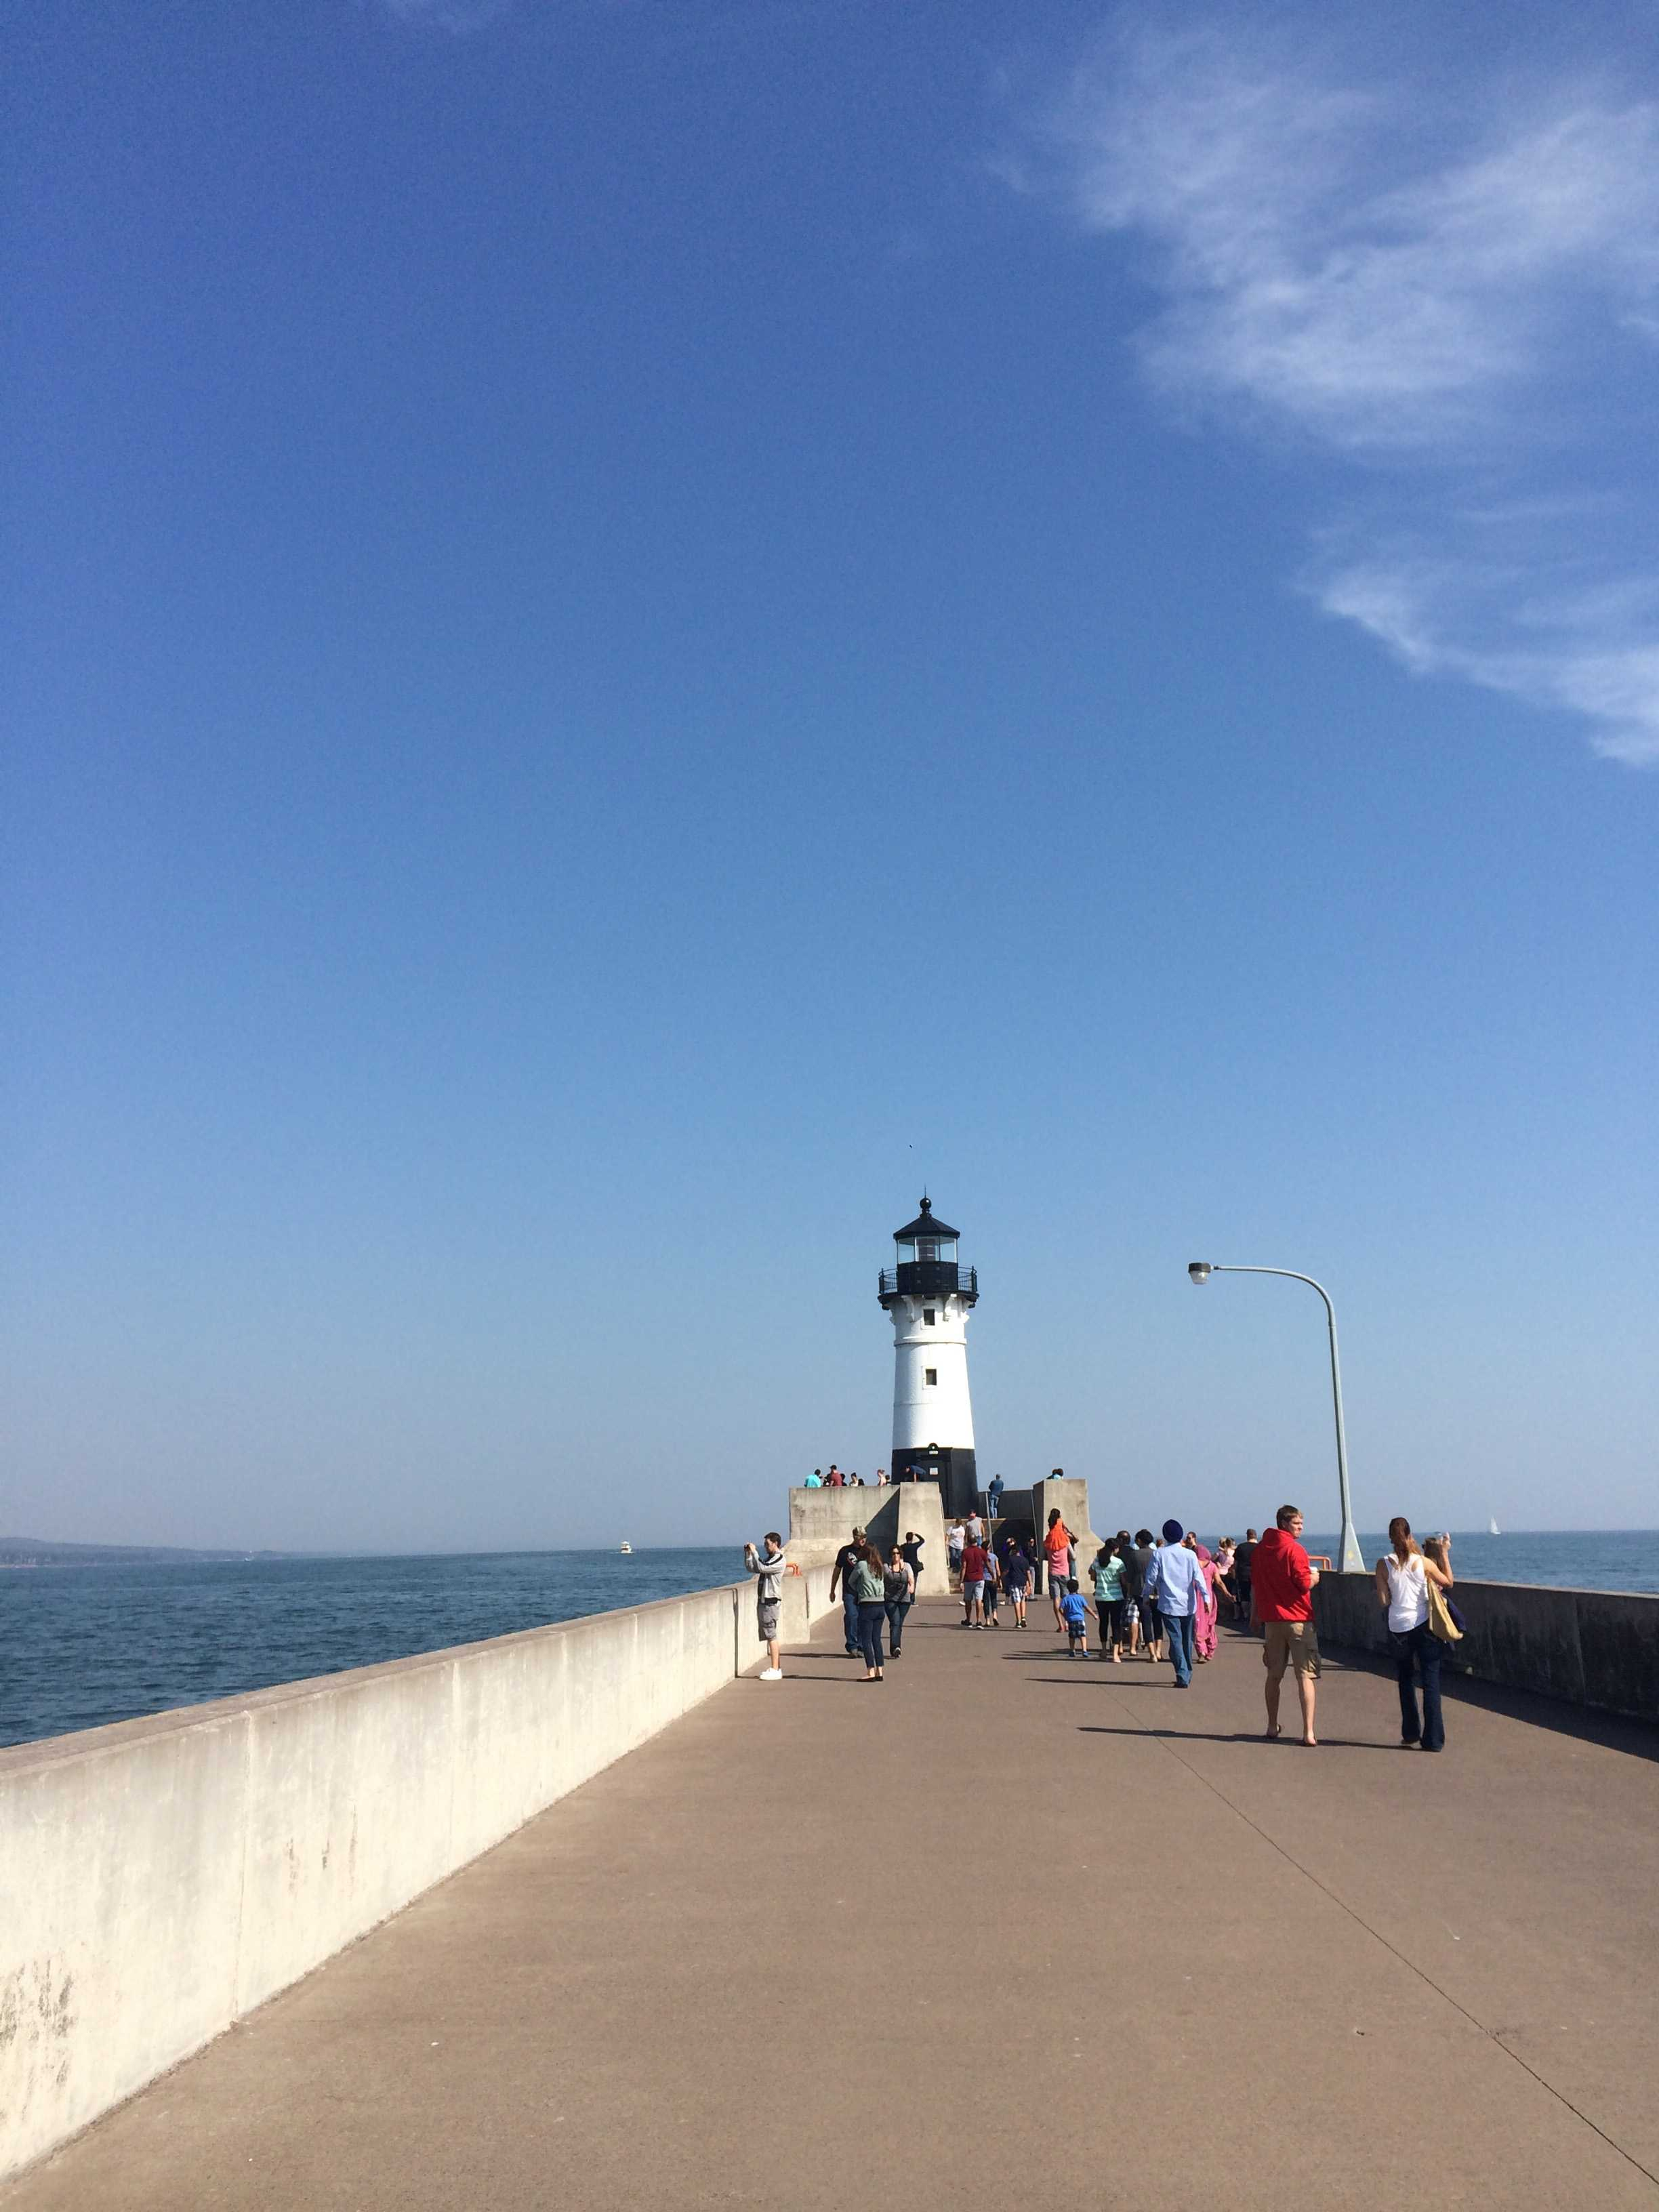 View+of+the+lighthouse+pier+in+Canal+Park+during+a+visit+to+Duluth%2C+Minnesota.+Photo+by+Amy+Lebowitz%2715.